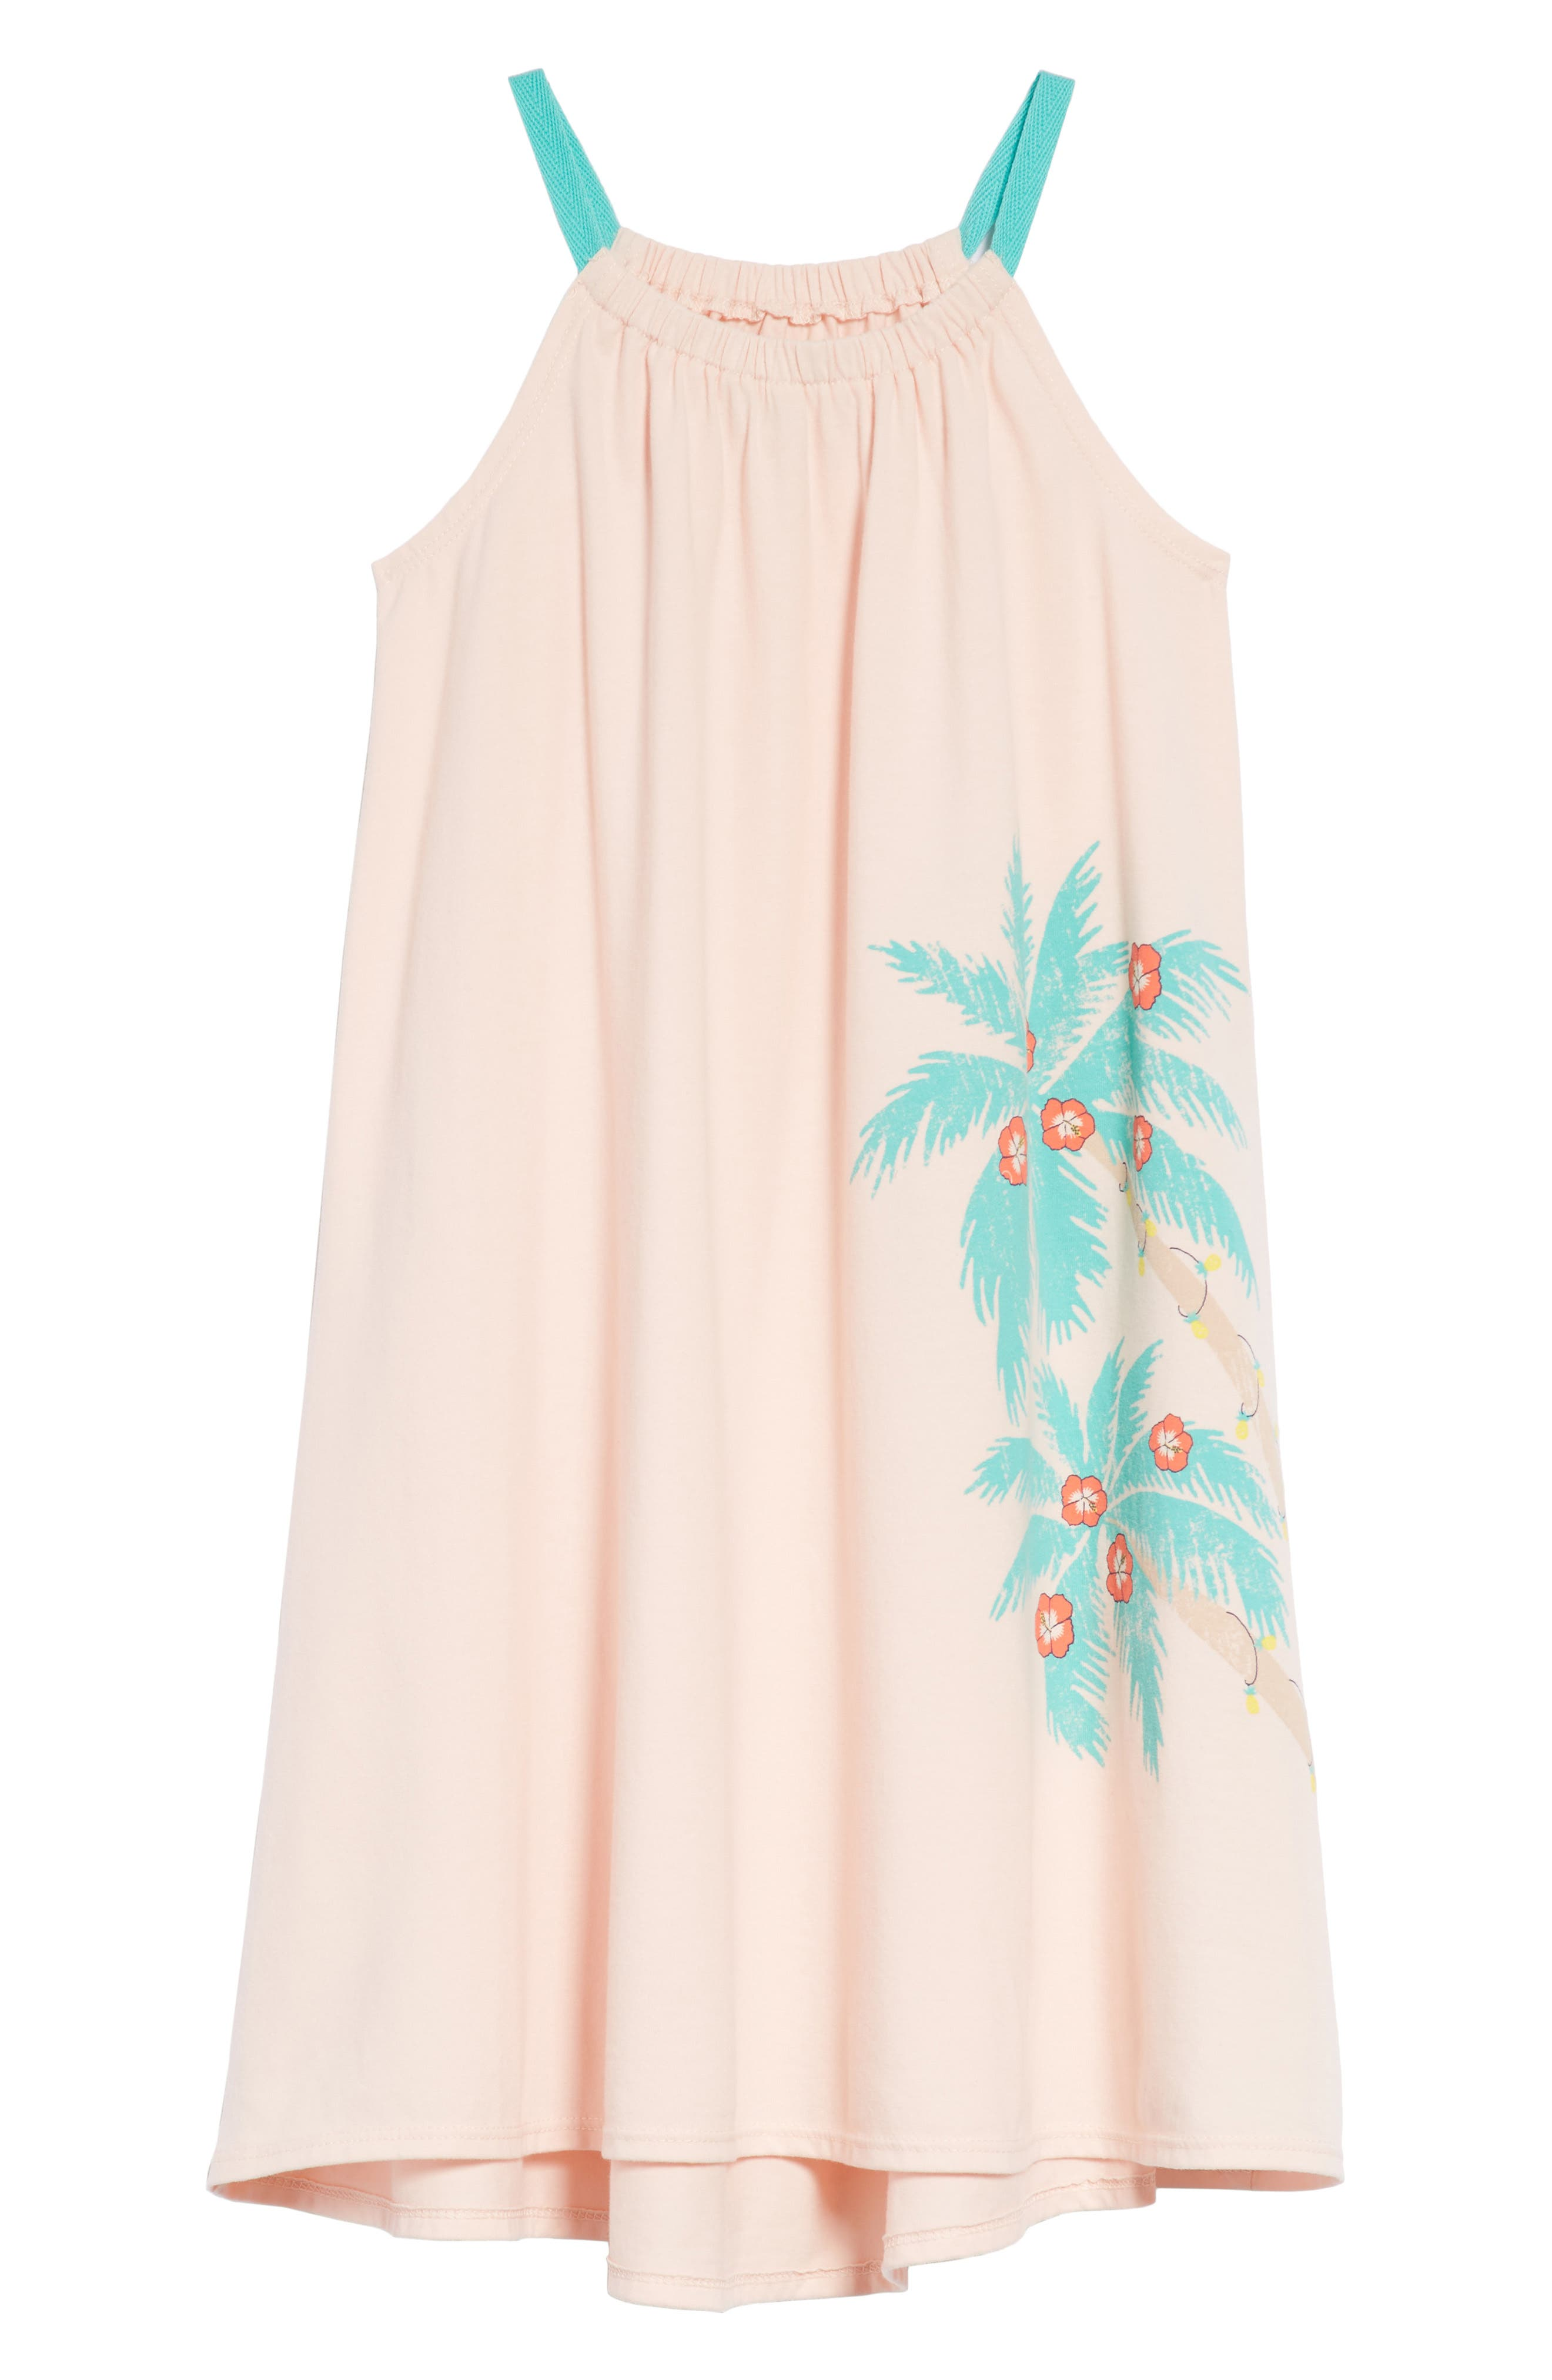 Palm Trees Graphic Swing Dress,                         Main,                         color, Pink Chintz Palm Trees